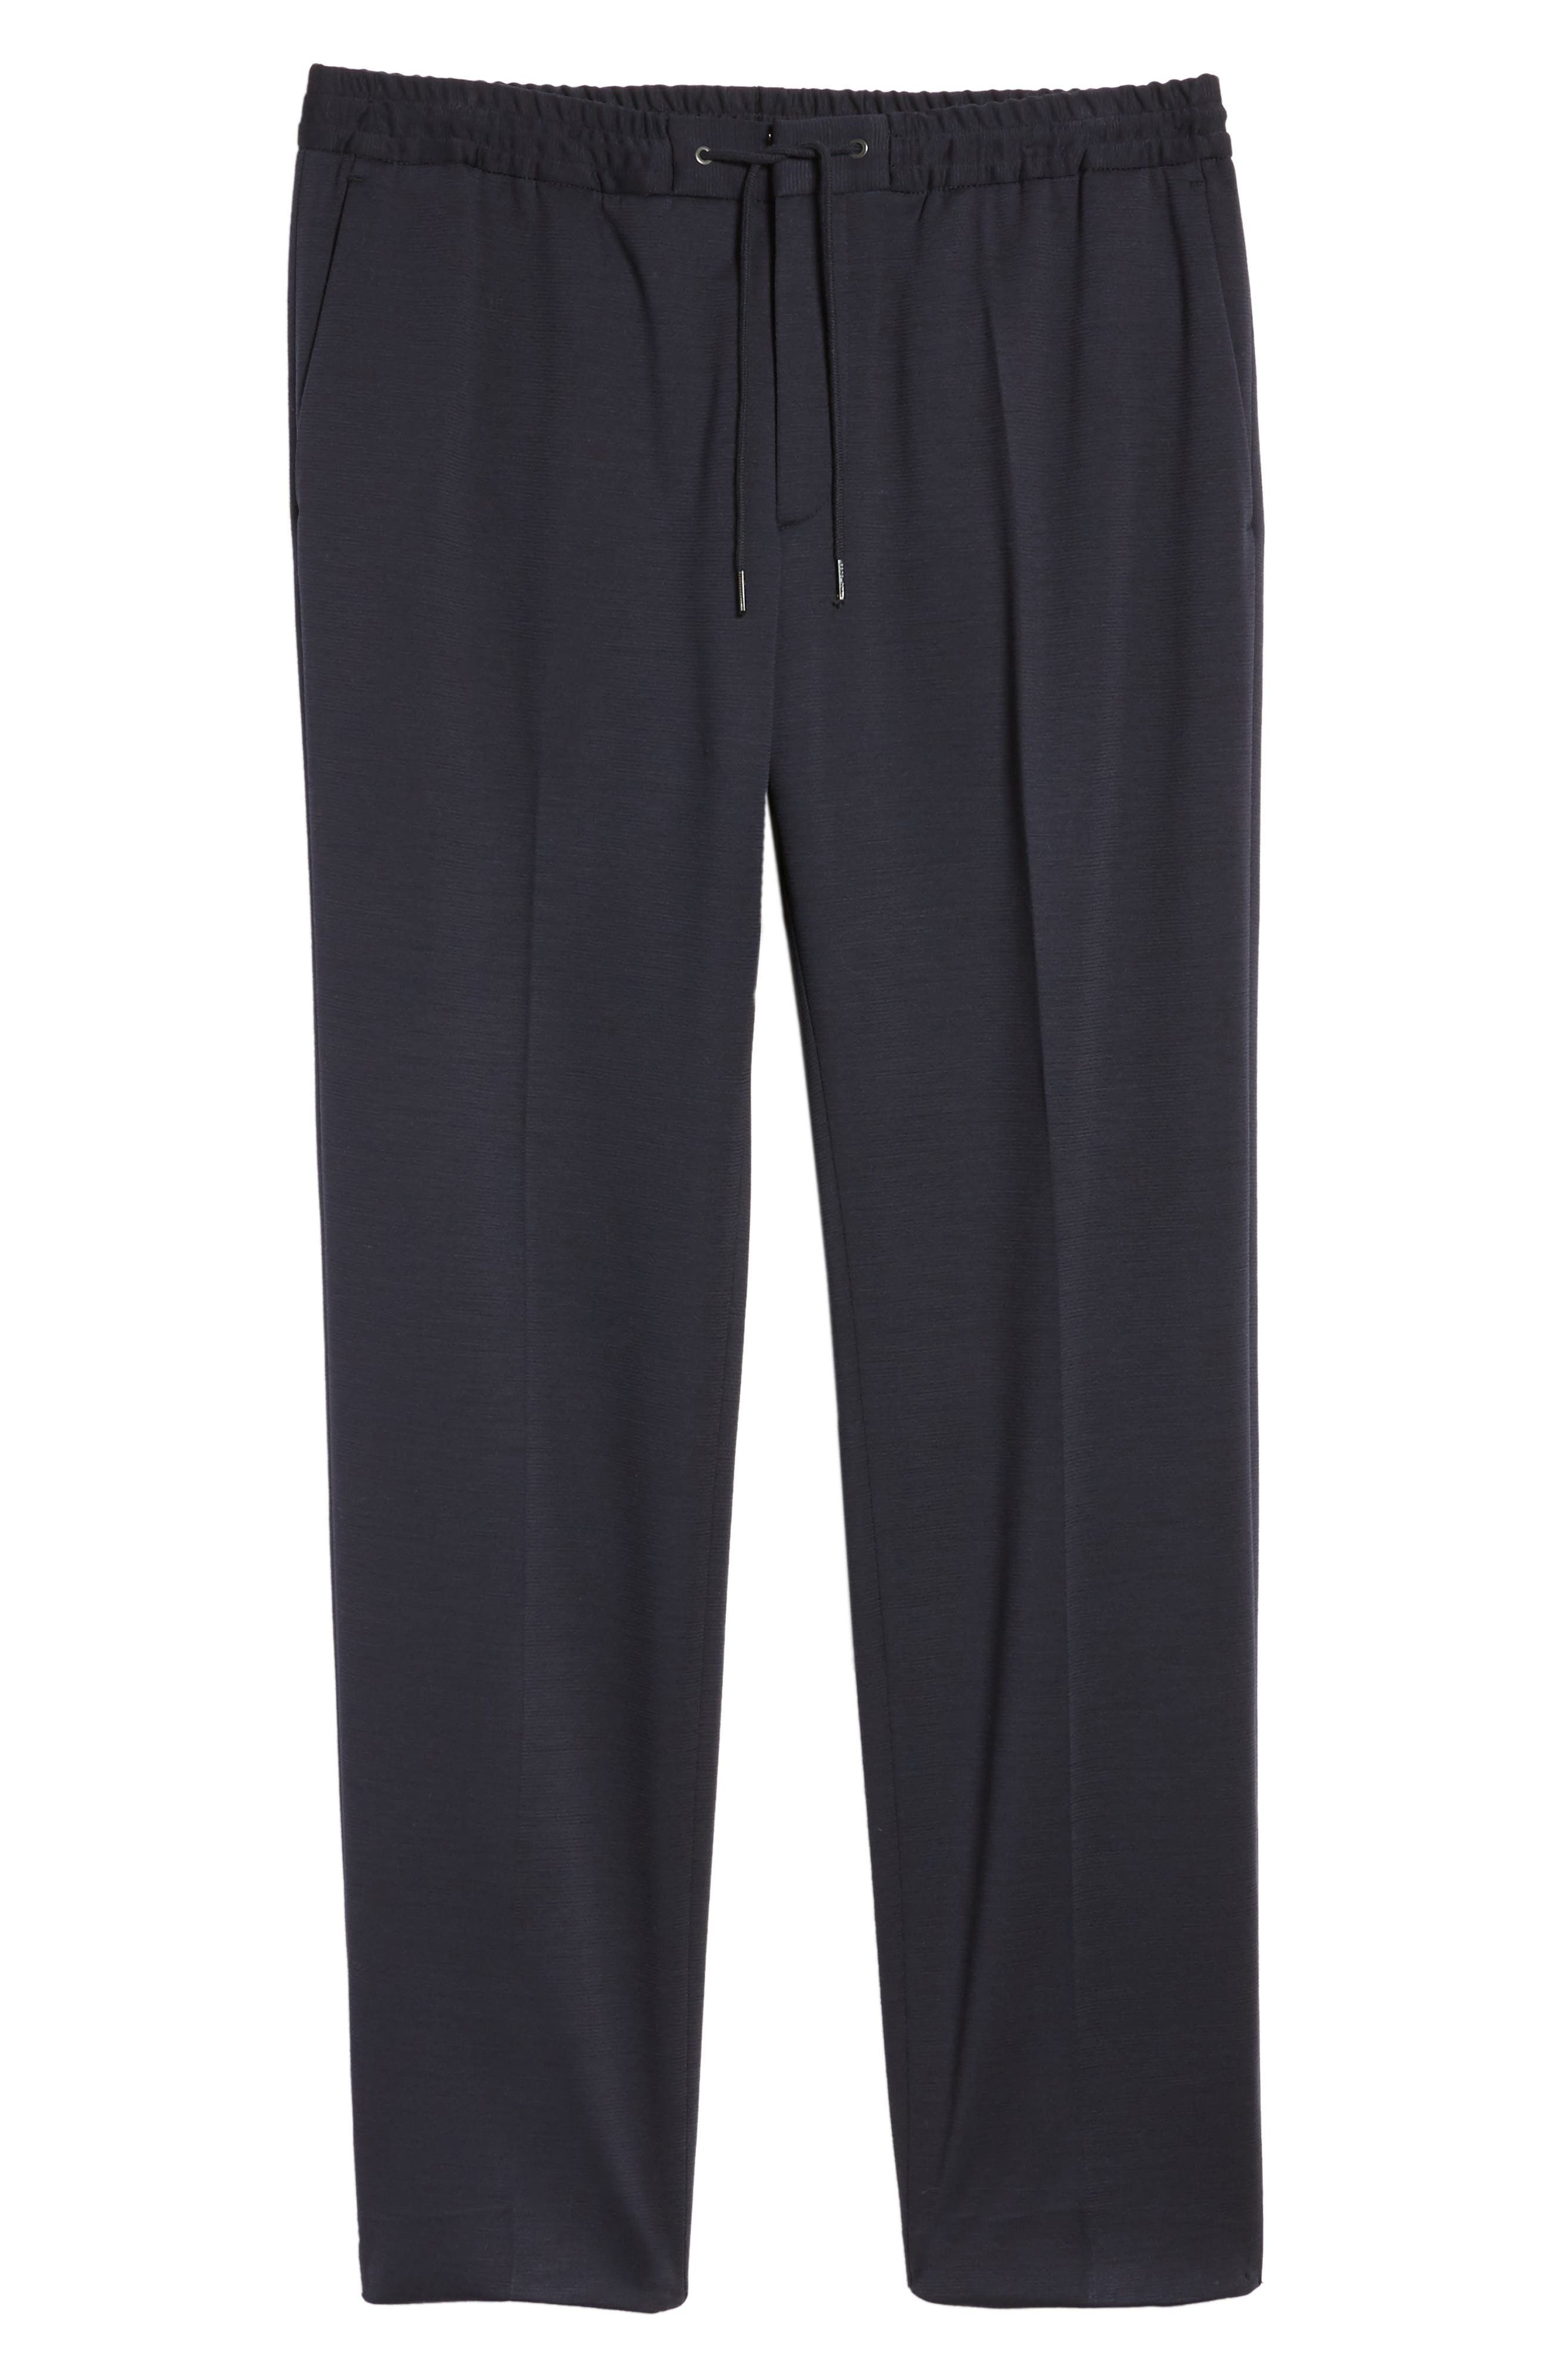 Banks Flat Front Trim Fit Wool Blend Trousers,                             Alternate thumbnail 6, color,                             Navy